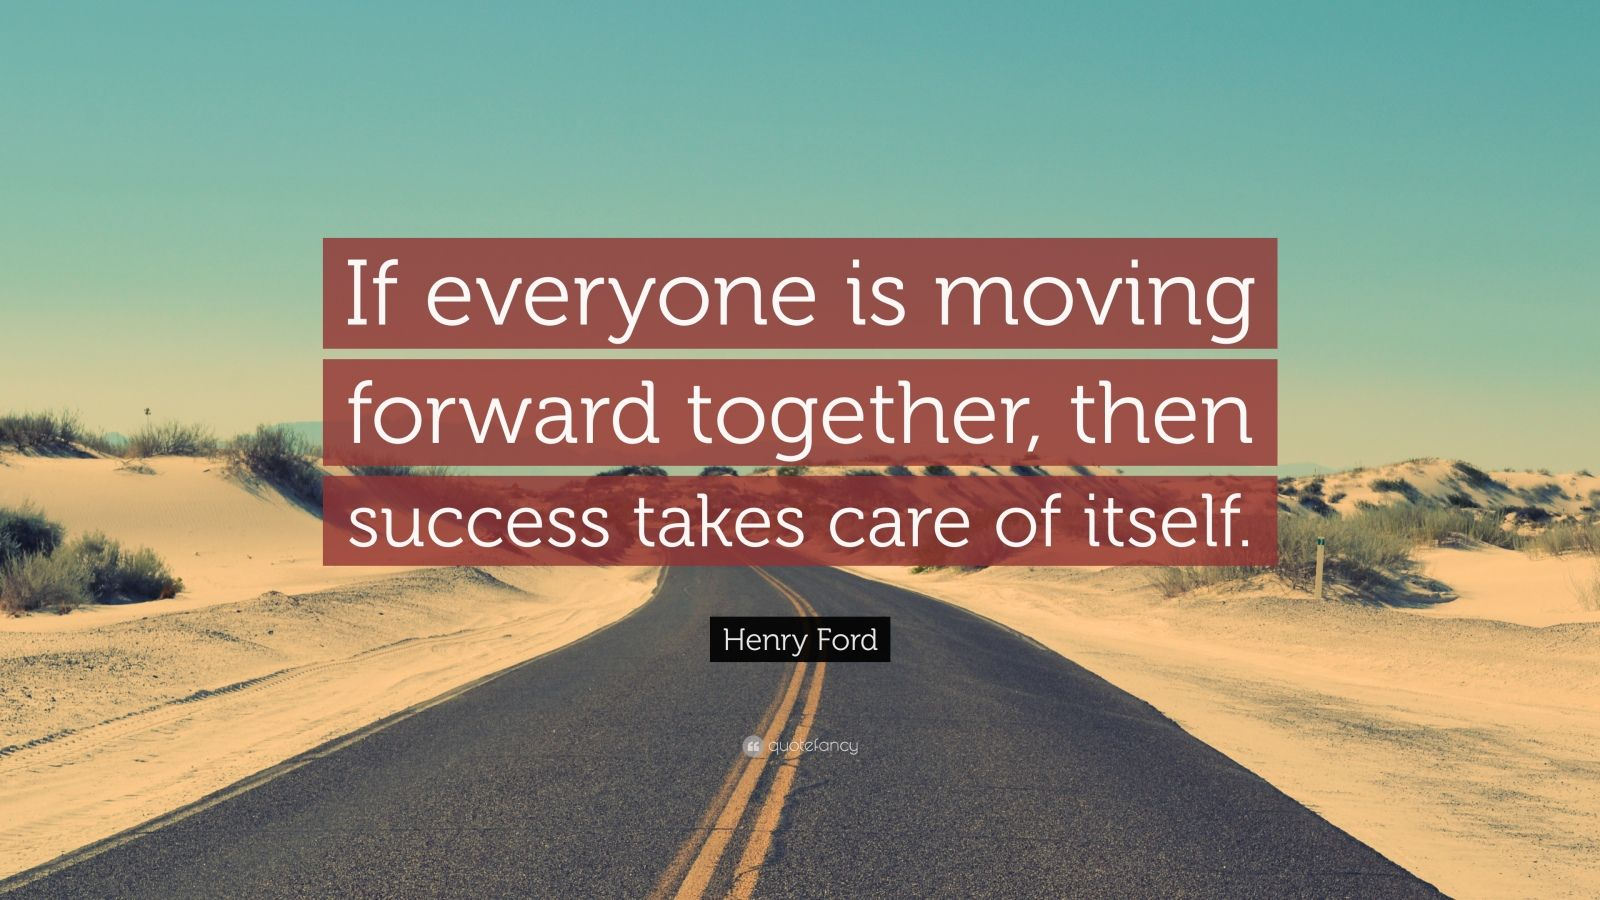 Steve Jobs Motivational Quotes Wallpaper Henry Ford Quote If Everyone Is Moving Forward Together